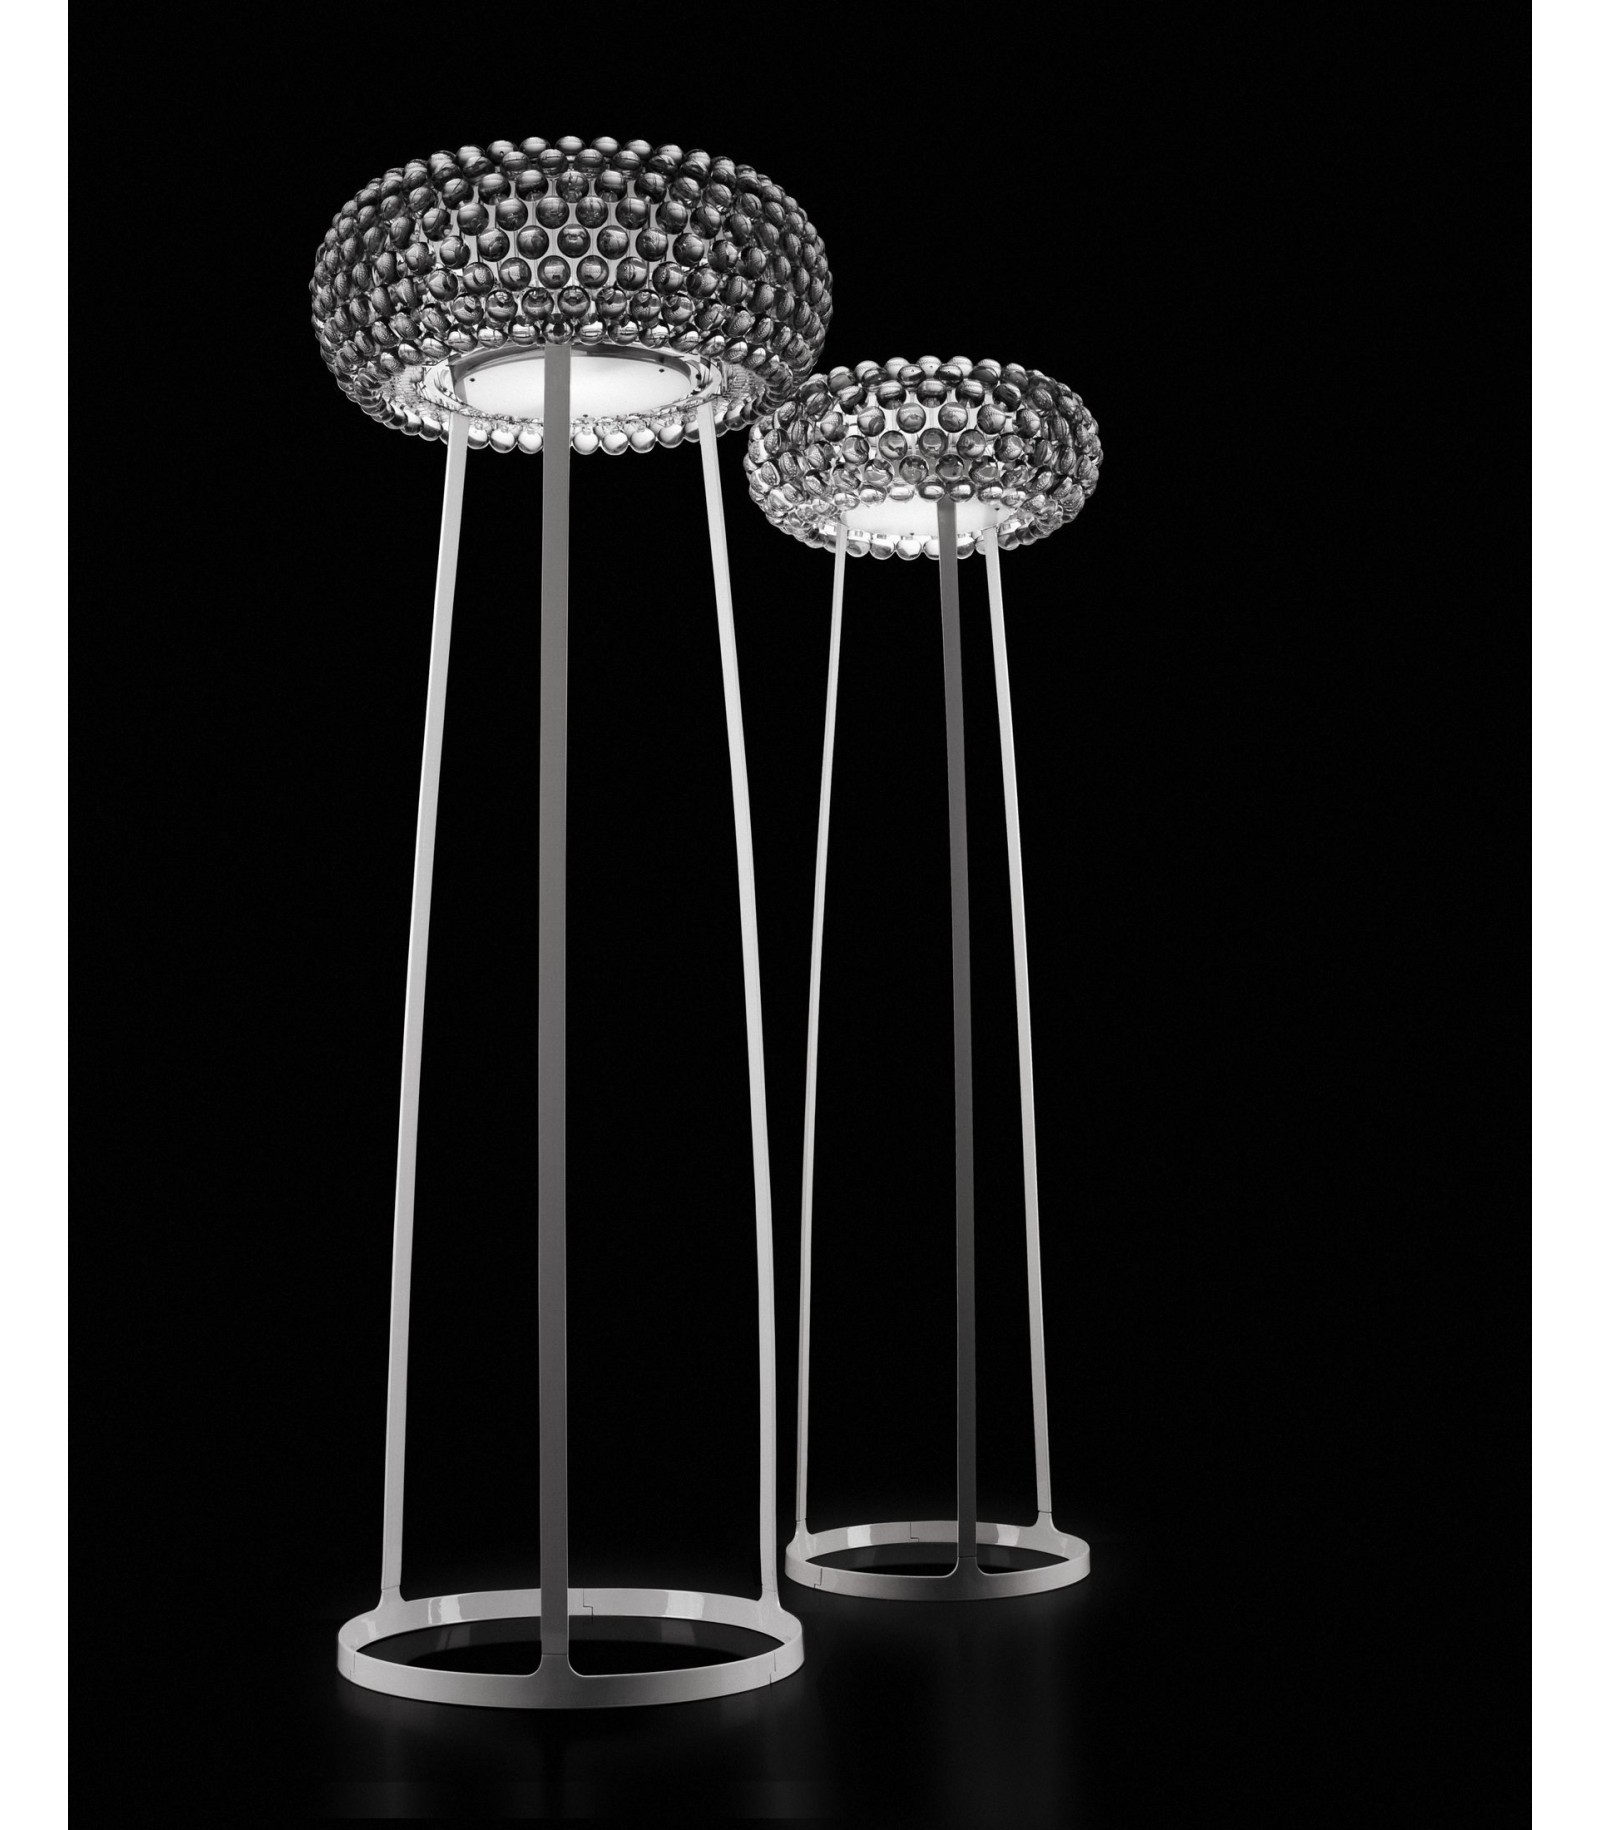 foscarini caboche lampada a terra in vendita online. Black Bedroom Furniture Sets. Home Design Ideas